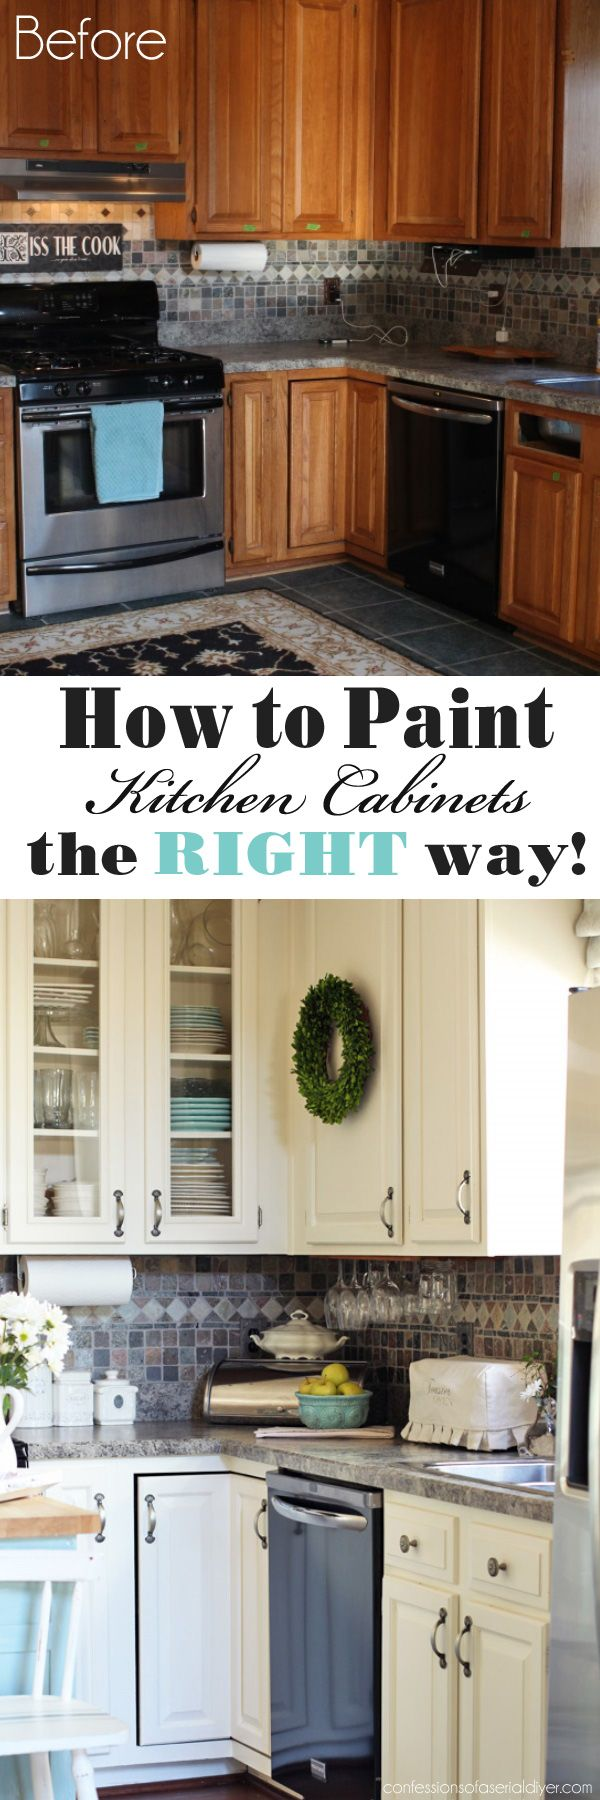 Design Diy Cabinets best 25 diy kitchen cabinets ideas on pinterest how to paint the right way from confessions of a serial do it